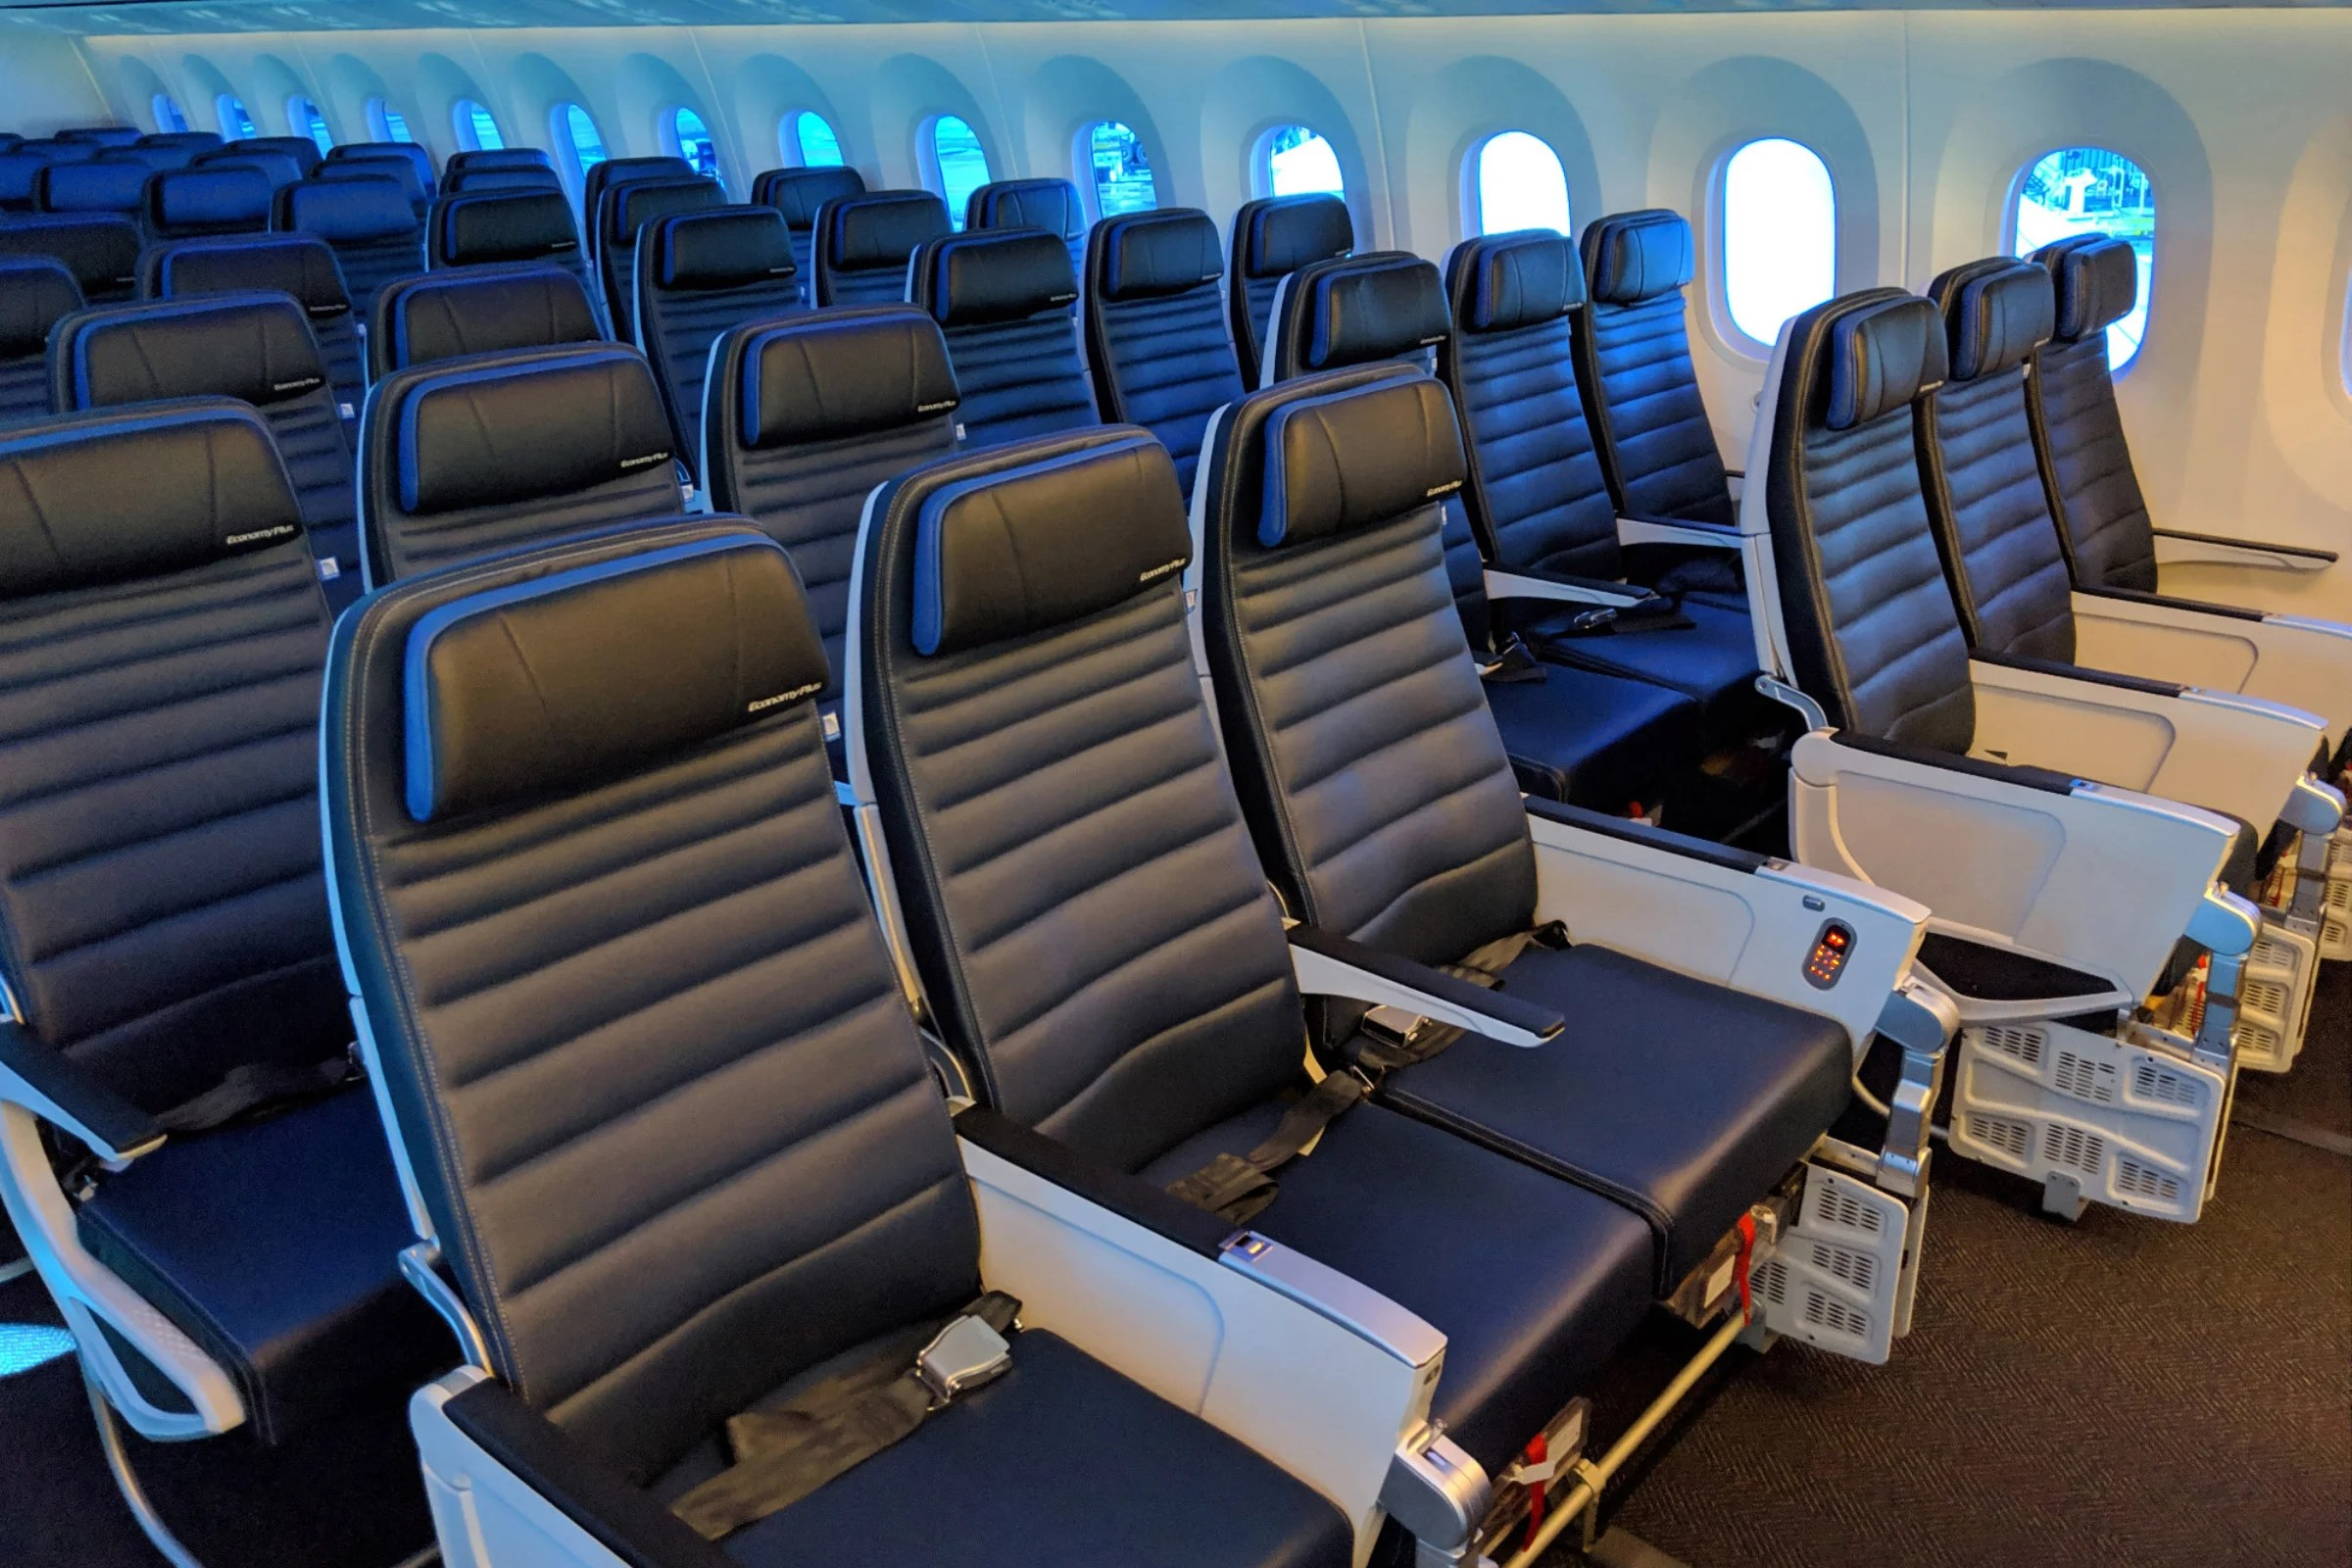 United Clarifies What It Actually Means To Block Middle Seats,Small Powder Room Sinks